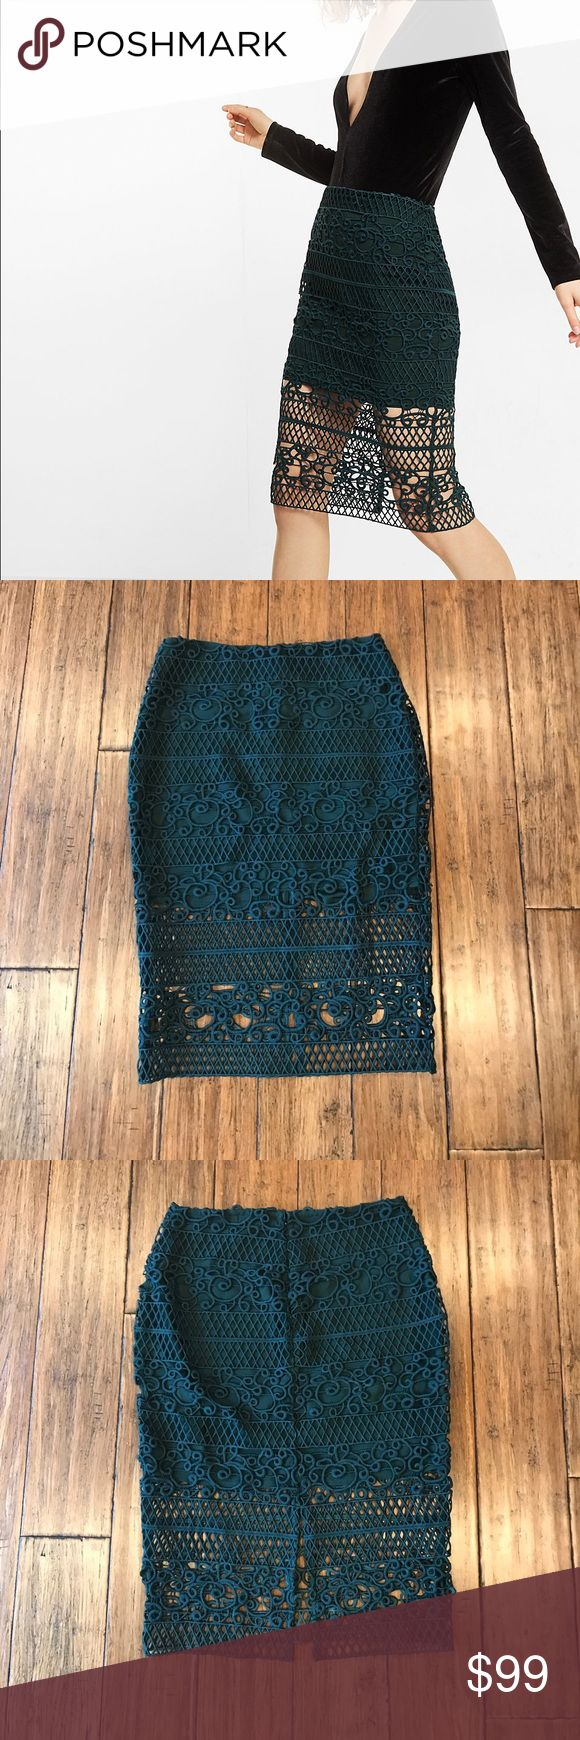 """Crocheted Pencil Skirt Sold out online! This trellis-like crocheted lace lays over a shorter lining for an ultra-feminine take on the high waisted pencil skirt. Its slimming shape pairs beautifully with a long-sleeve body suit. Approx. 25.5"""" long, 14"""" across waist, and 18"""" across hips. Shell 100% polyester, lining 96% polyester, 4% spandex. Back slit approx. 8"""" deep.  * Pencil skirt * Hidden back zipper * Soft, thick crocheted lace; Lined to mini length * Straight hem with back slit Express…"""